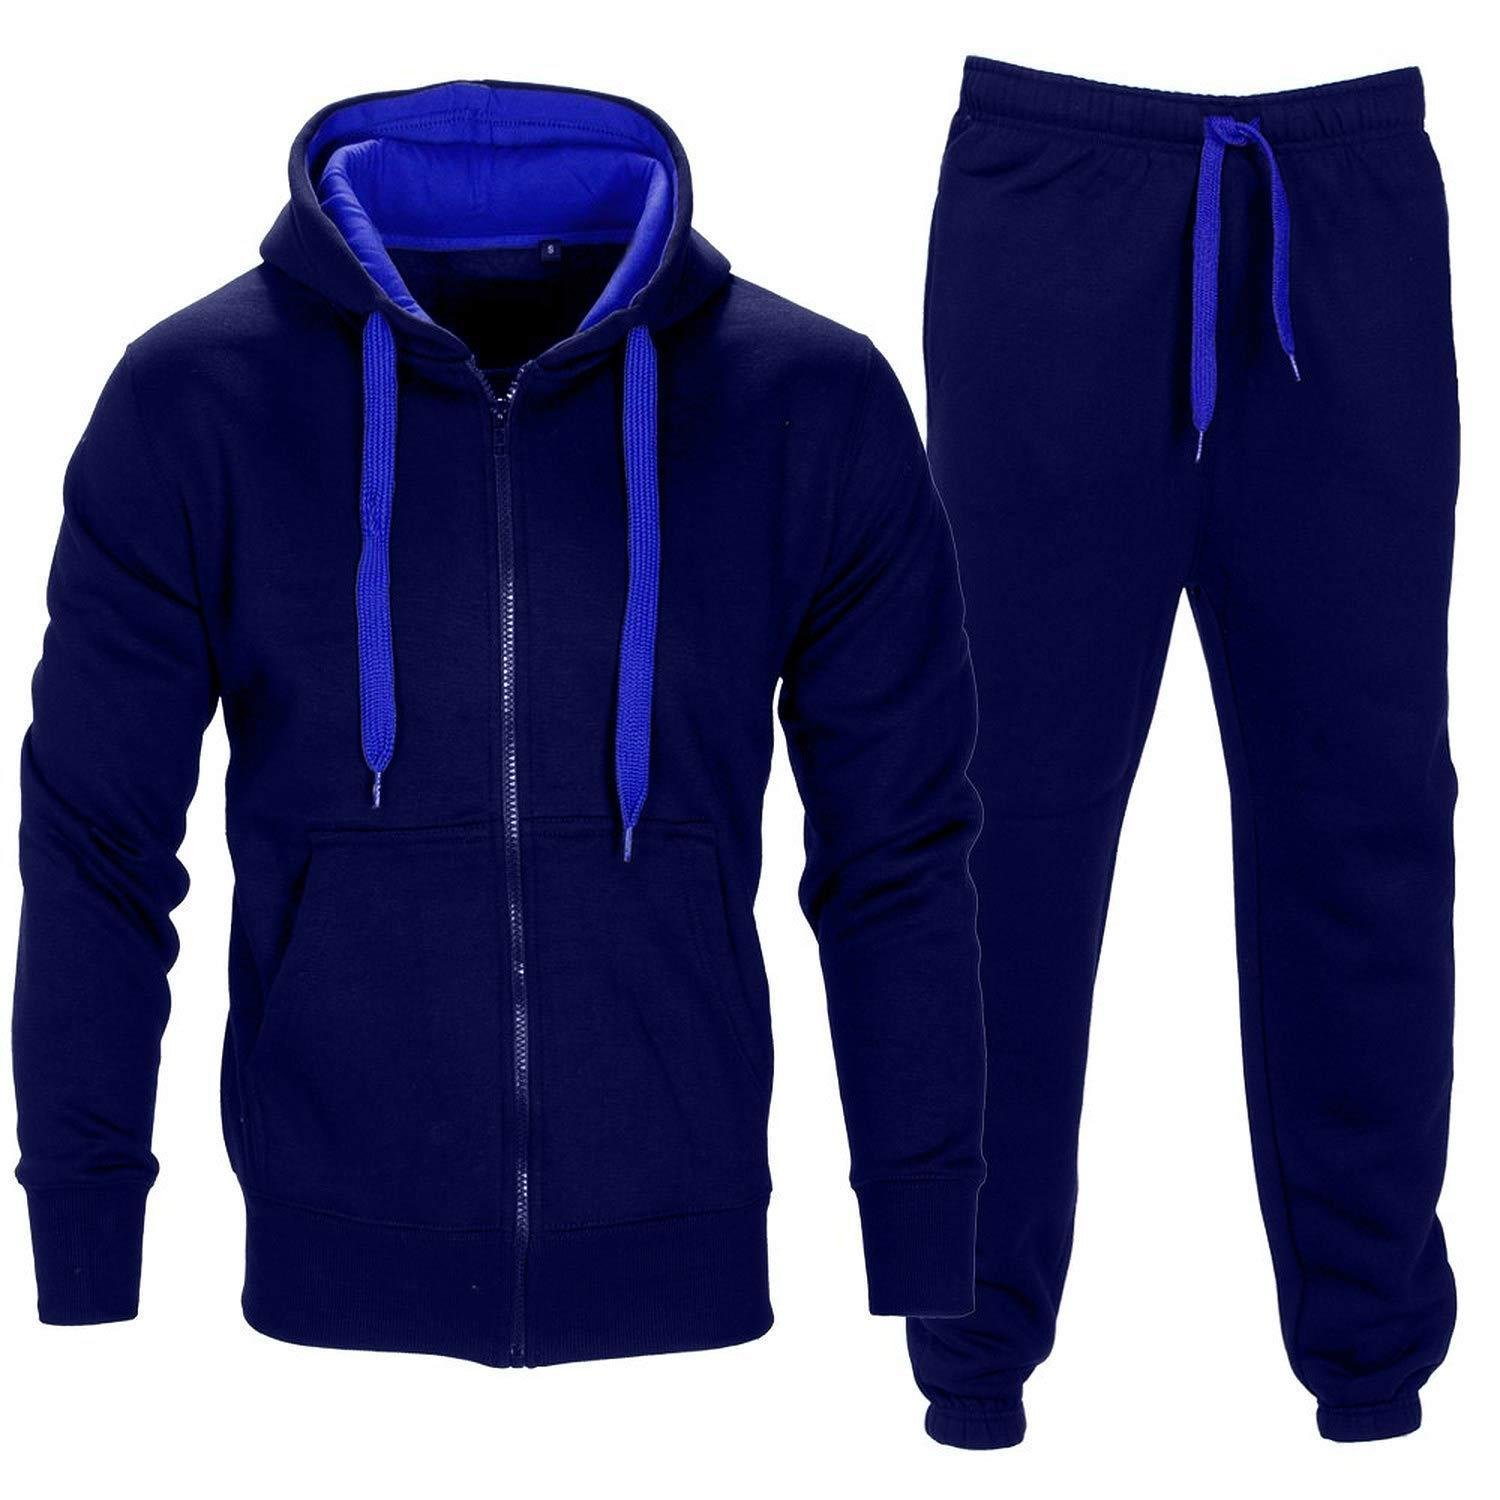 Men Tracksuit Set Contrast Cord Fleece Hoodie Bottom Jogger Gym Sport Suit Pants,Navy/Blue,XX-Large